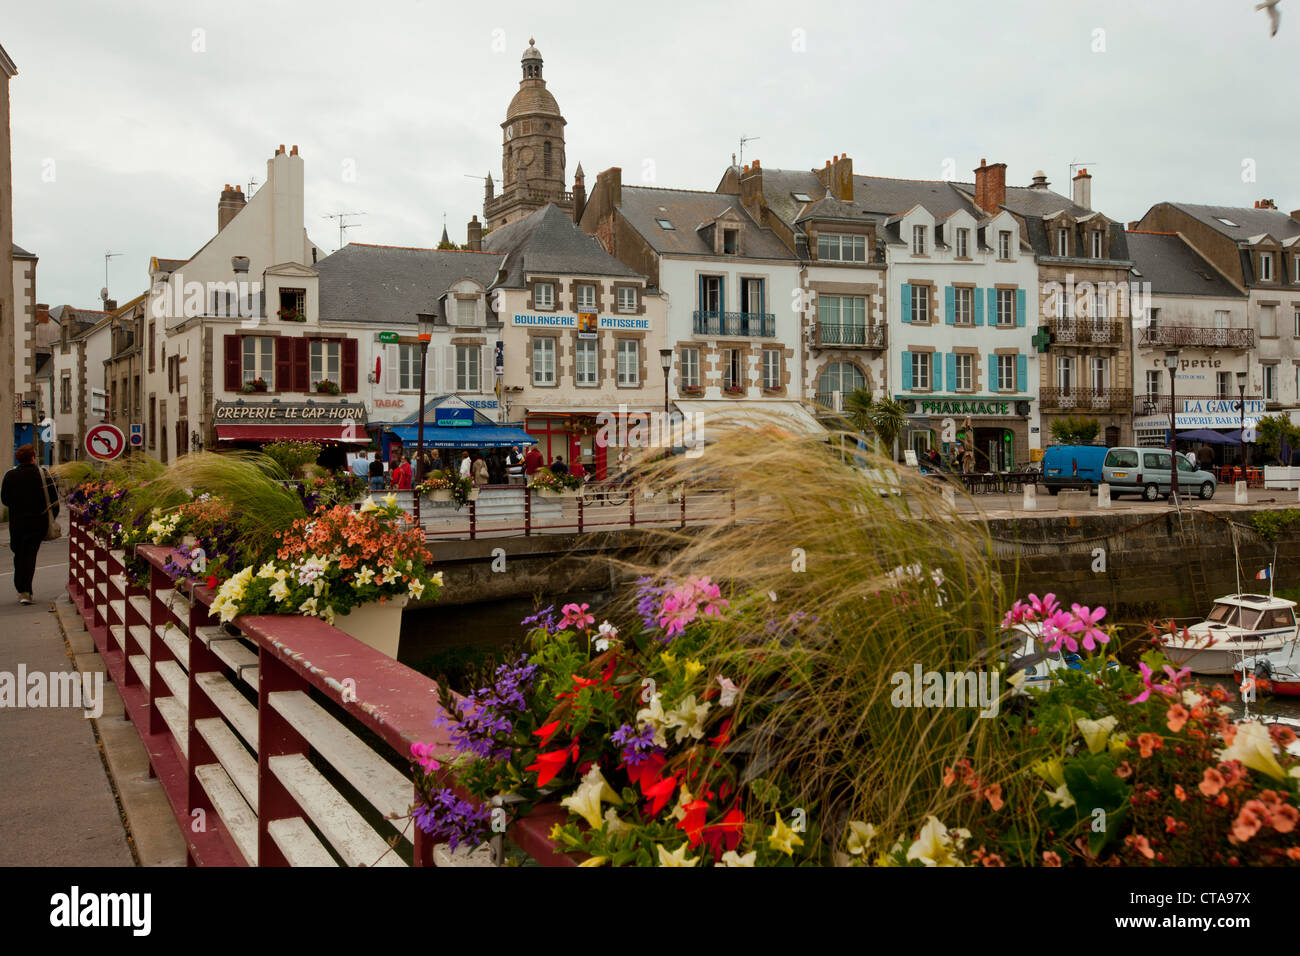 House facades, Le Croisic, Loire-Atlantique, Pays de la Loire, France Stock Photo